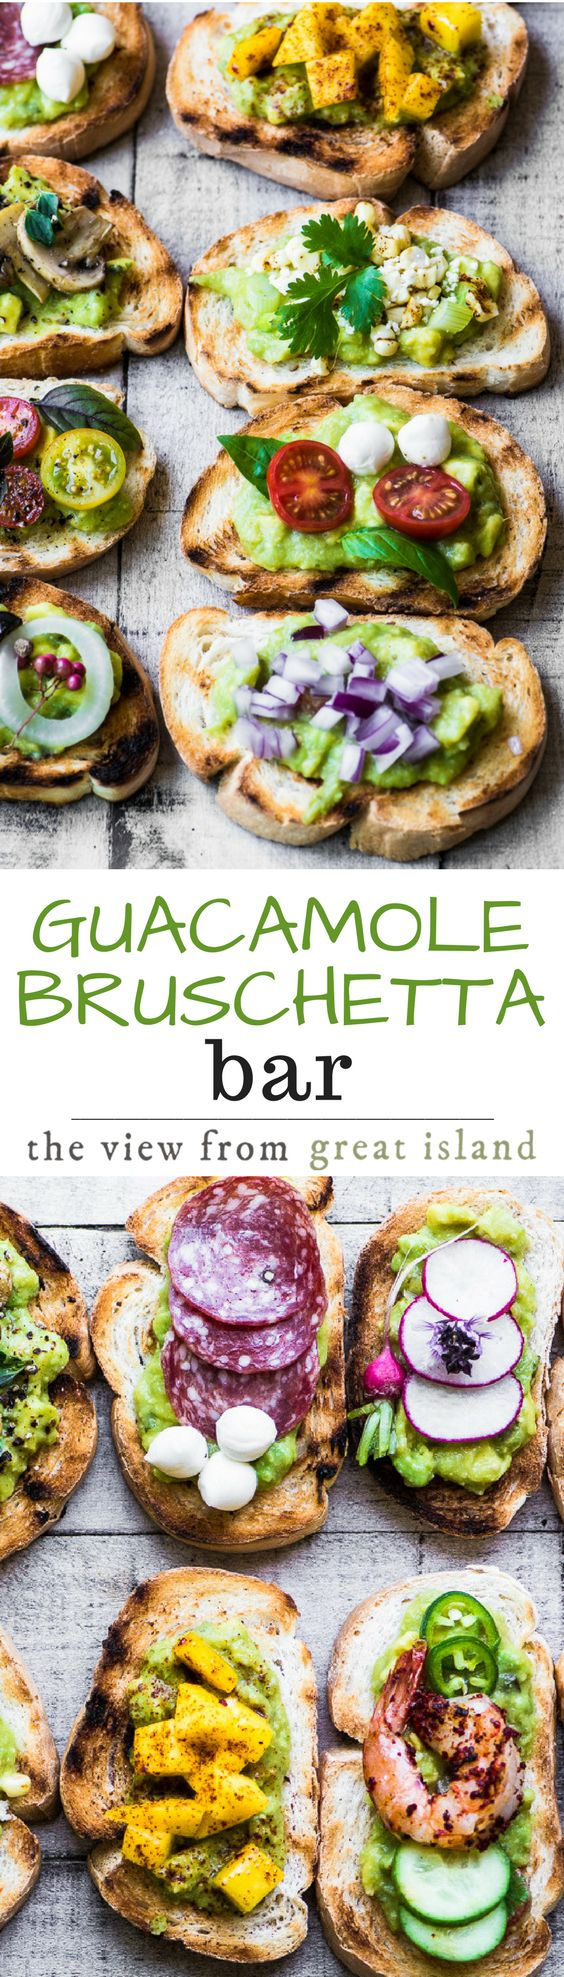 Guacamole Bruschetta Bar ~ admit it, you've always wanted to eat avocado toast for dinner, and this meal is healthy and lots of fun! | appetizer | main course | avocados | 30 minute meal | grilling | summer | #ad